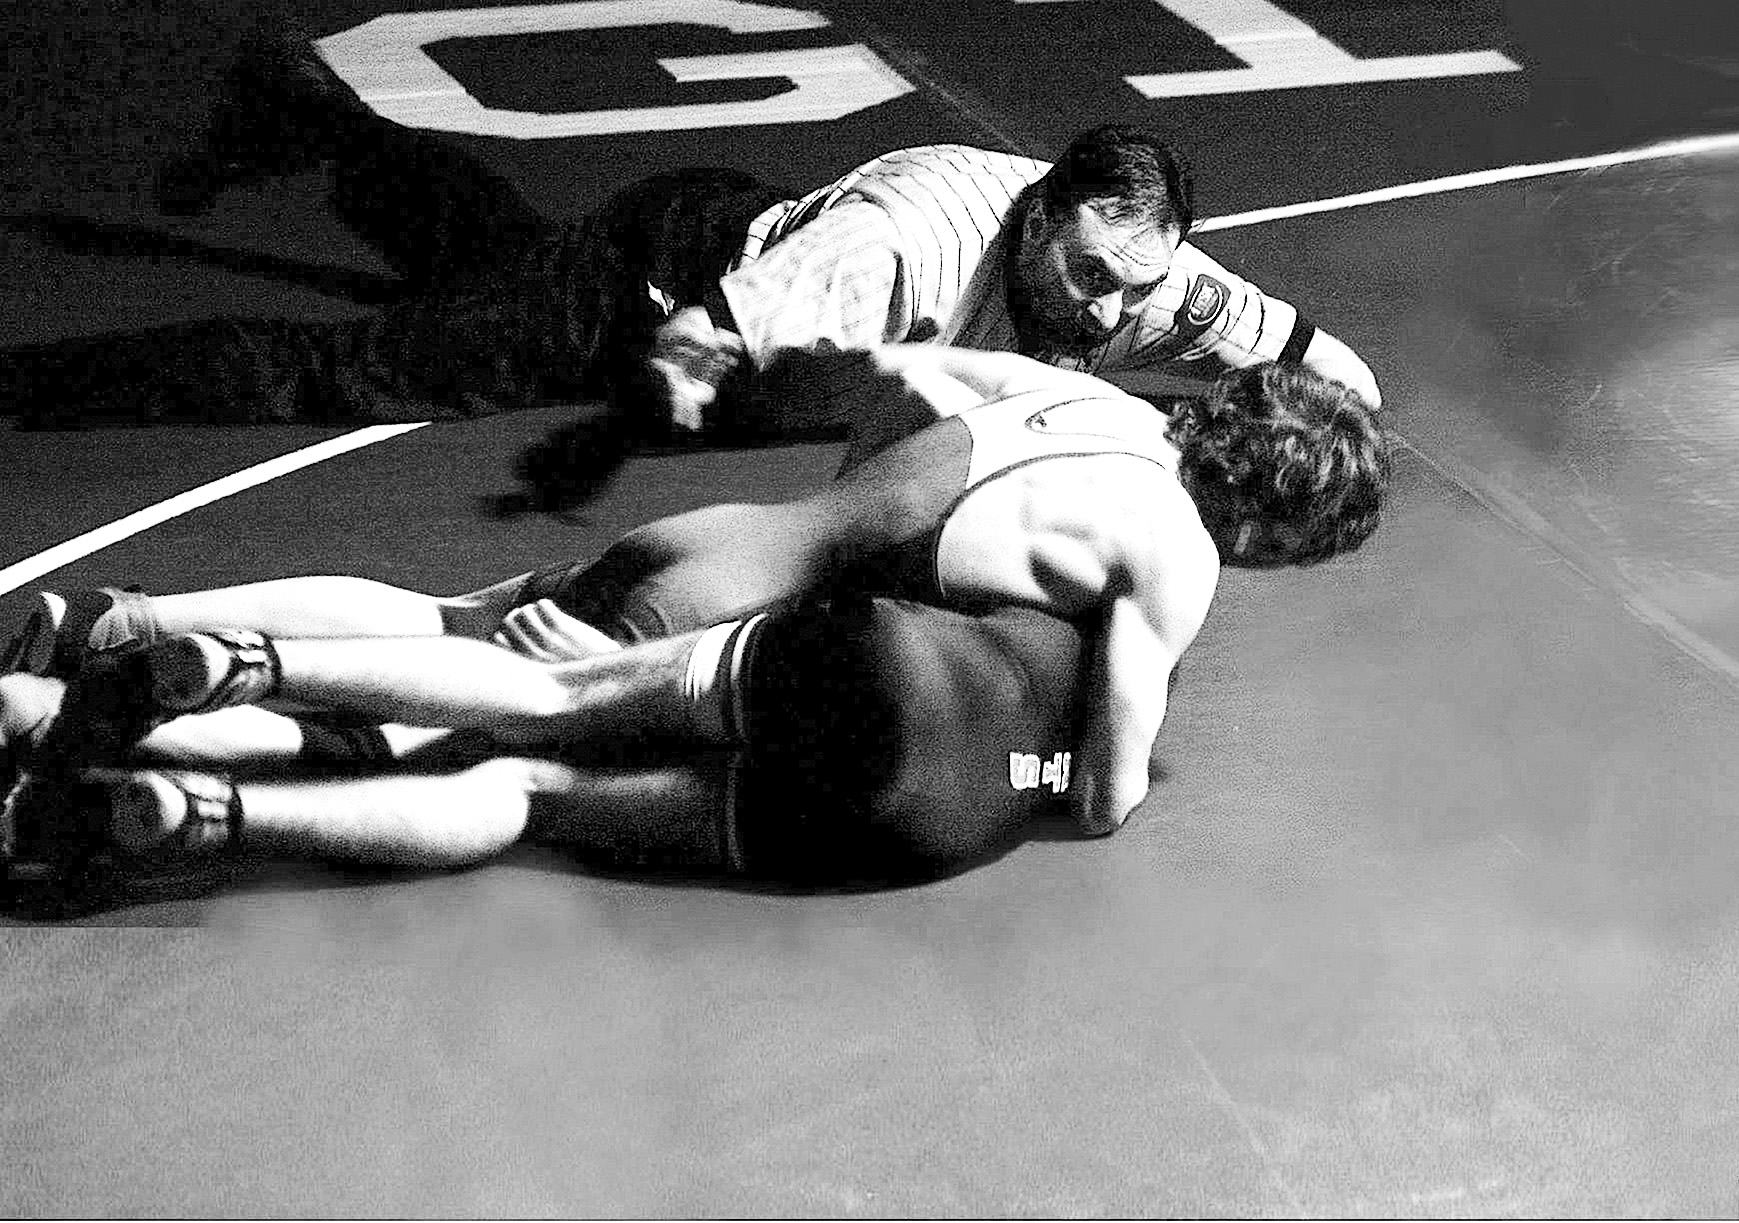 New student finds home in GBN wrestling